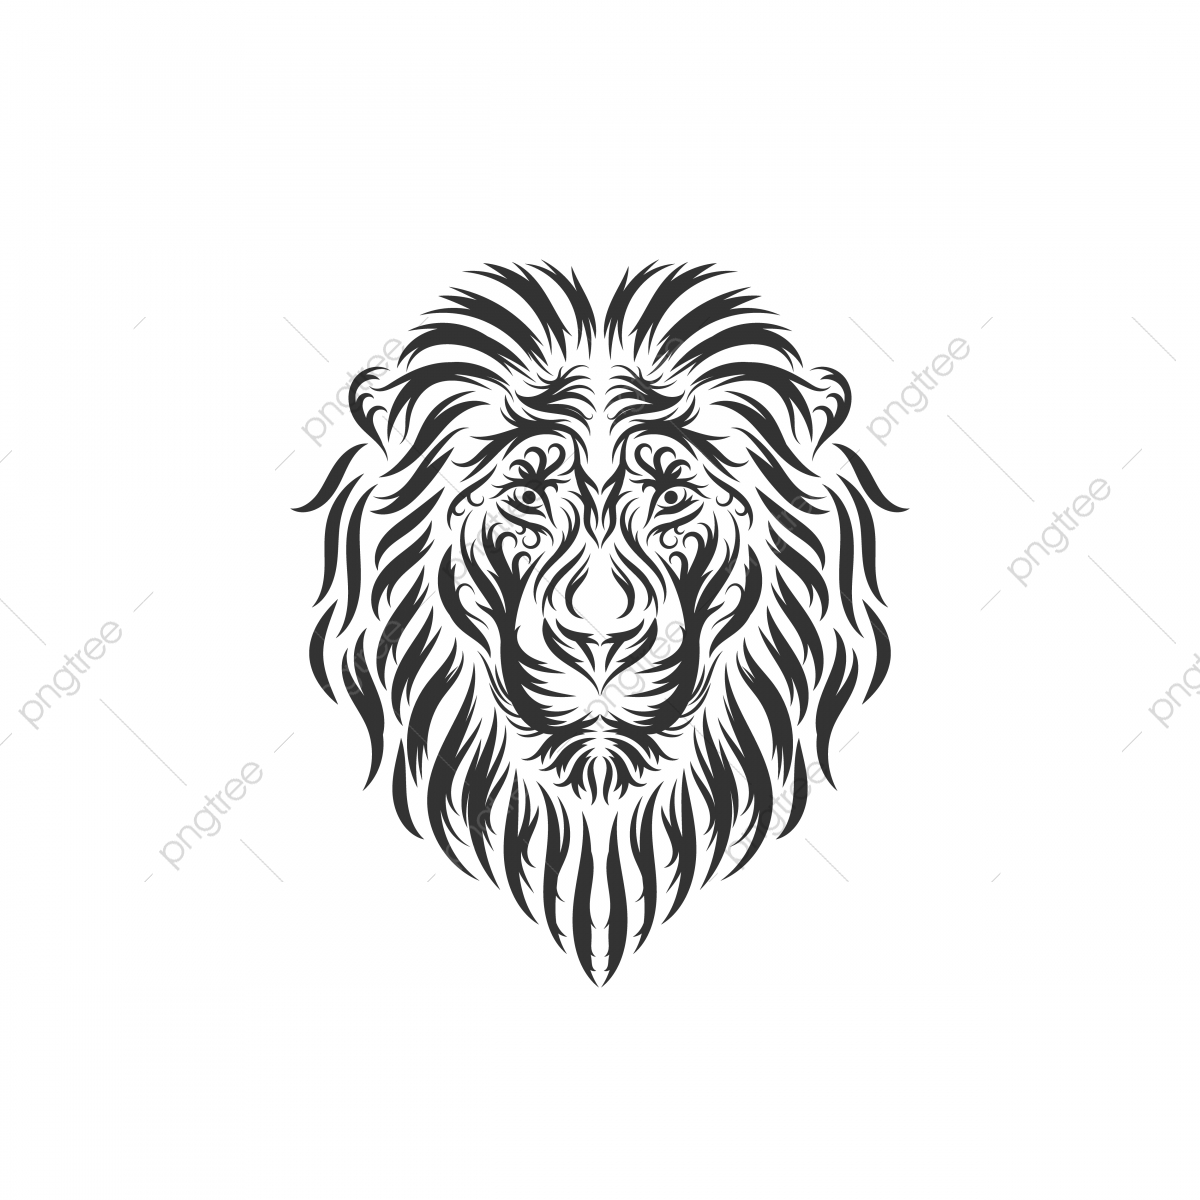 Hand Drawn Lion Head Inspirations Lion King Clipart Hand Icons Head Icons Png And Vector With Transparent Background For Free Download Free vector silhouettes for commercial use in.svg and.png format with a transparent background. https pngtree com freepng hand drawn lion head inspirations 4157981 html